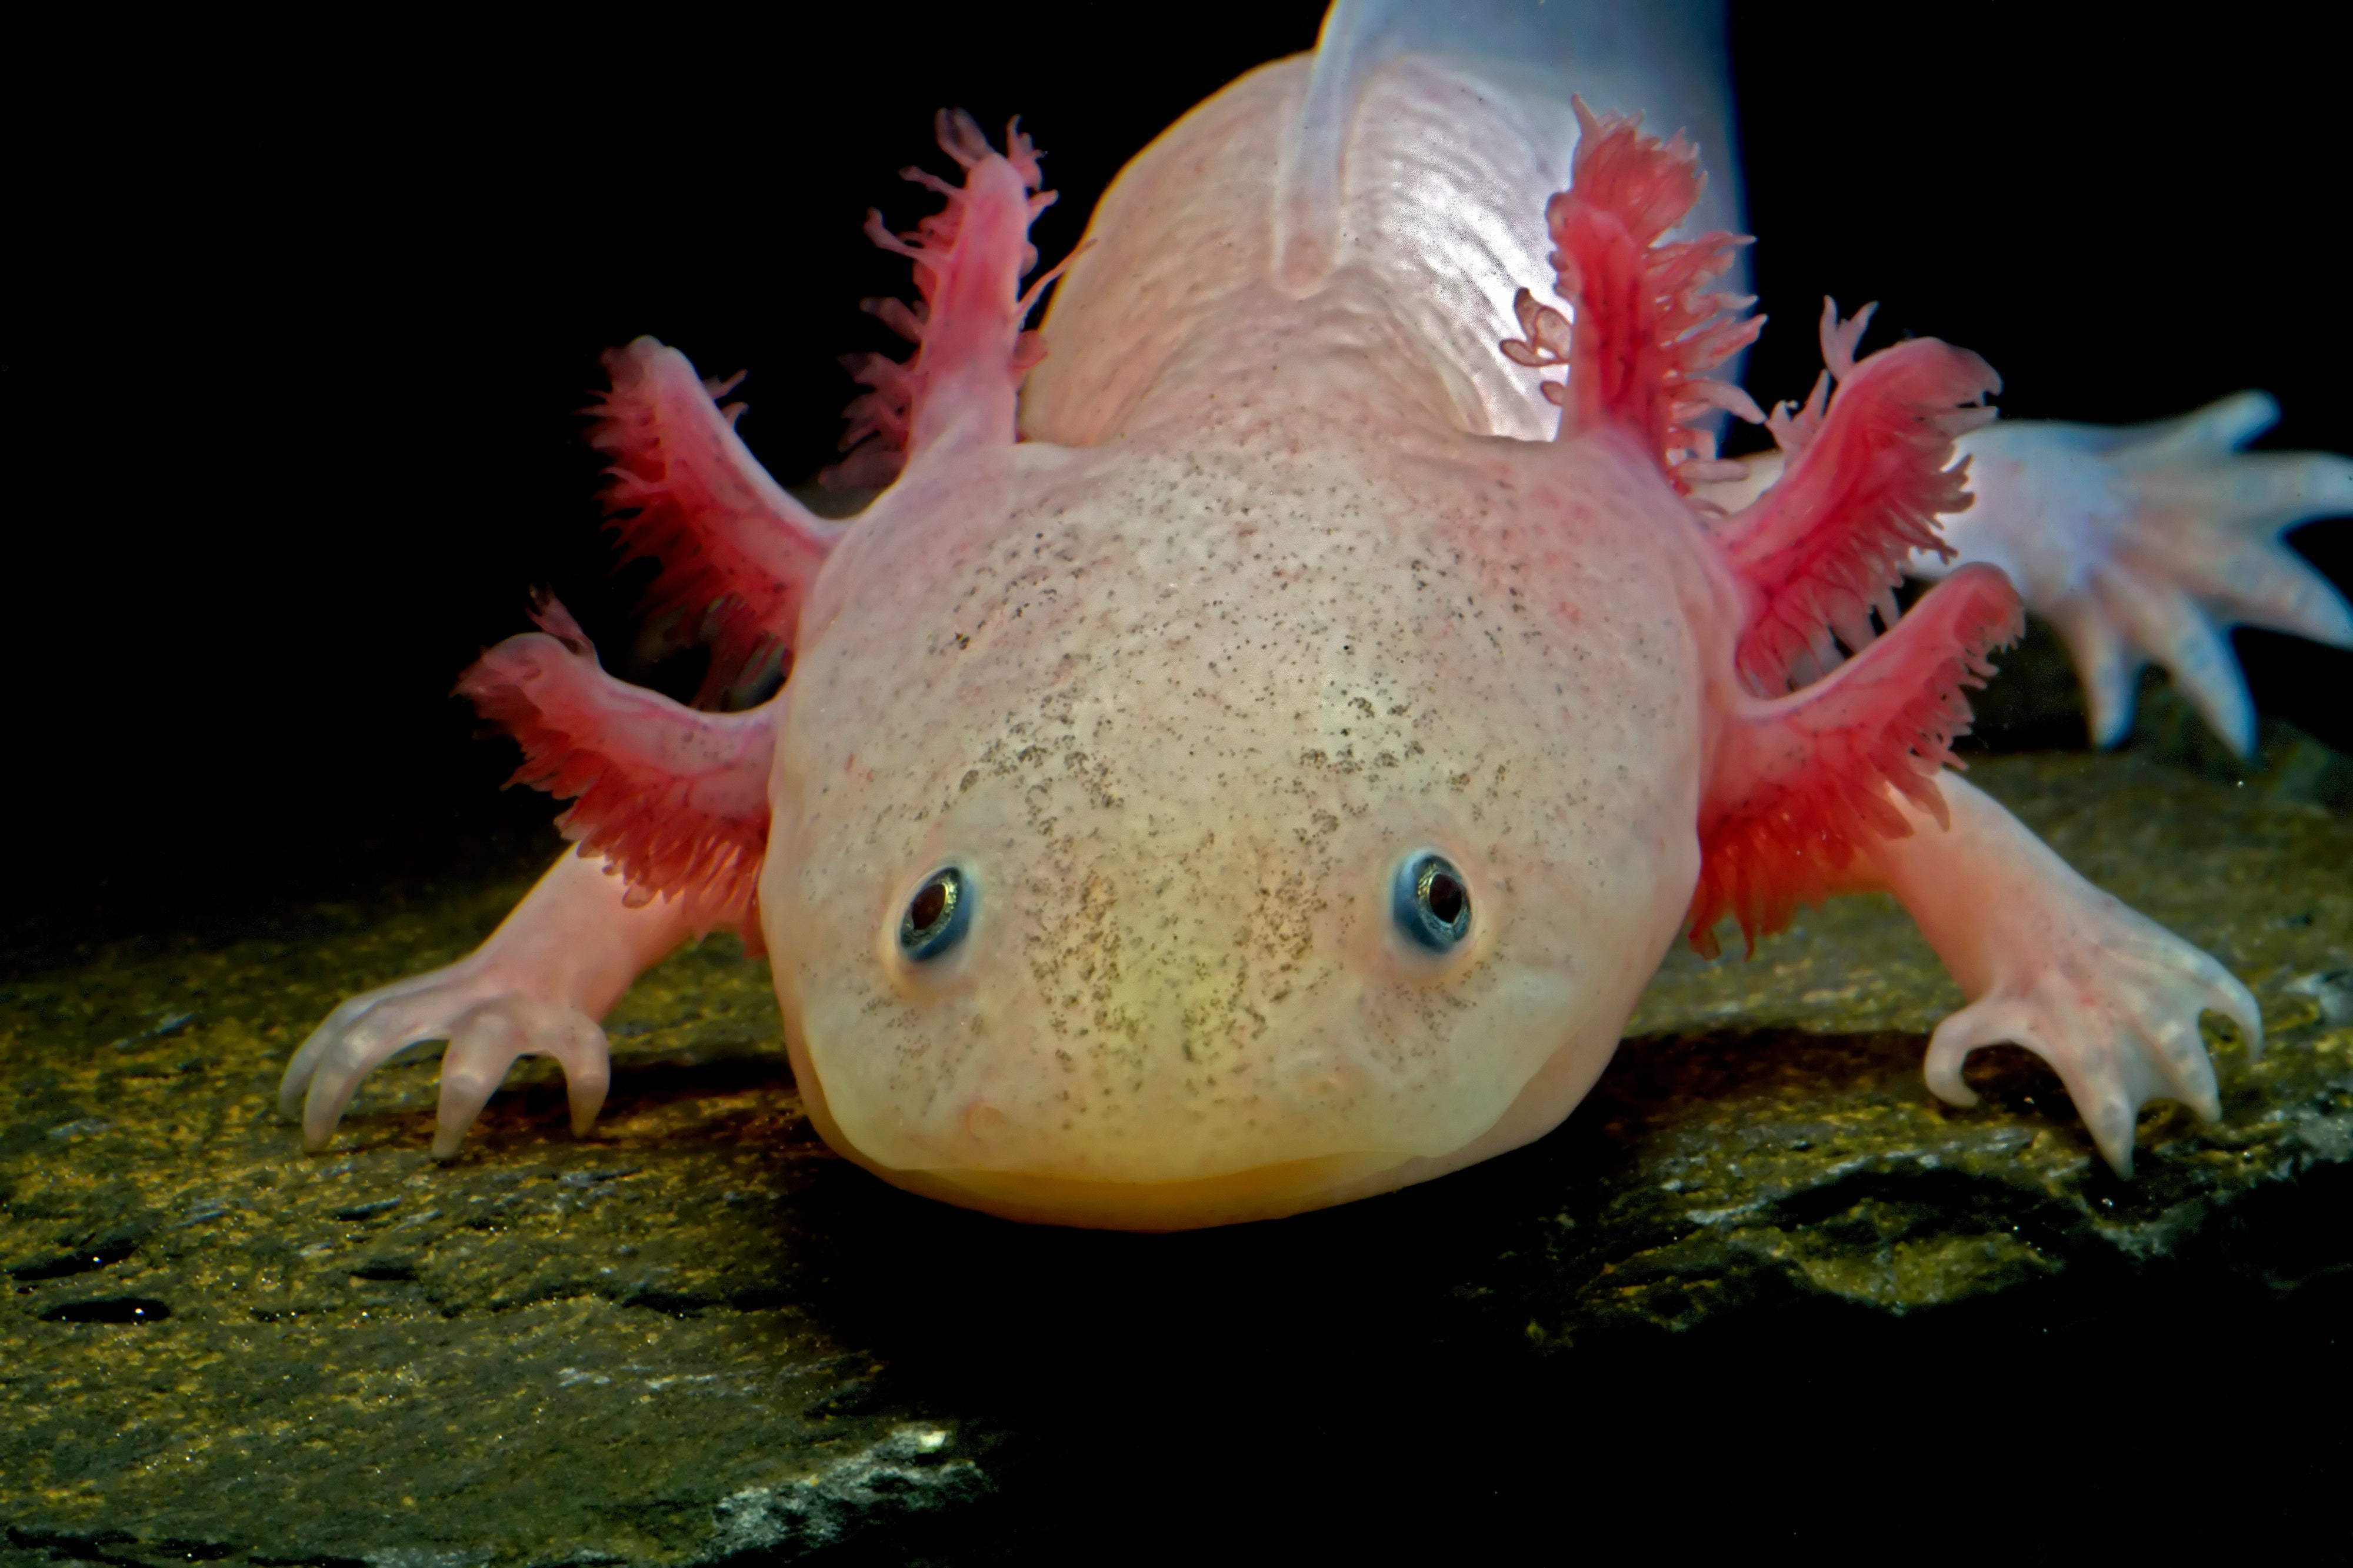 How to Take Care of an Axolotl Properly